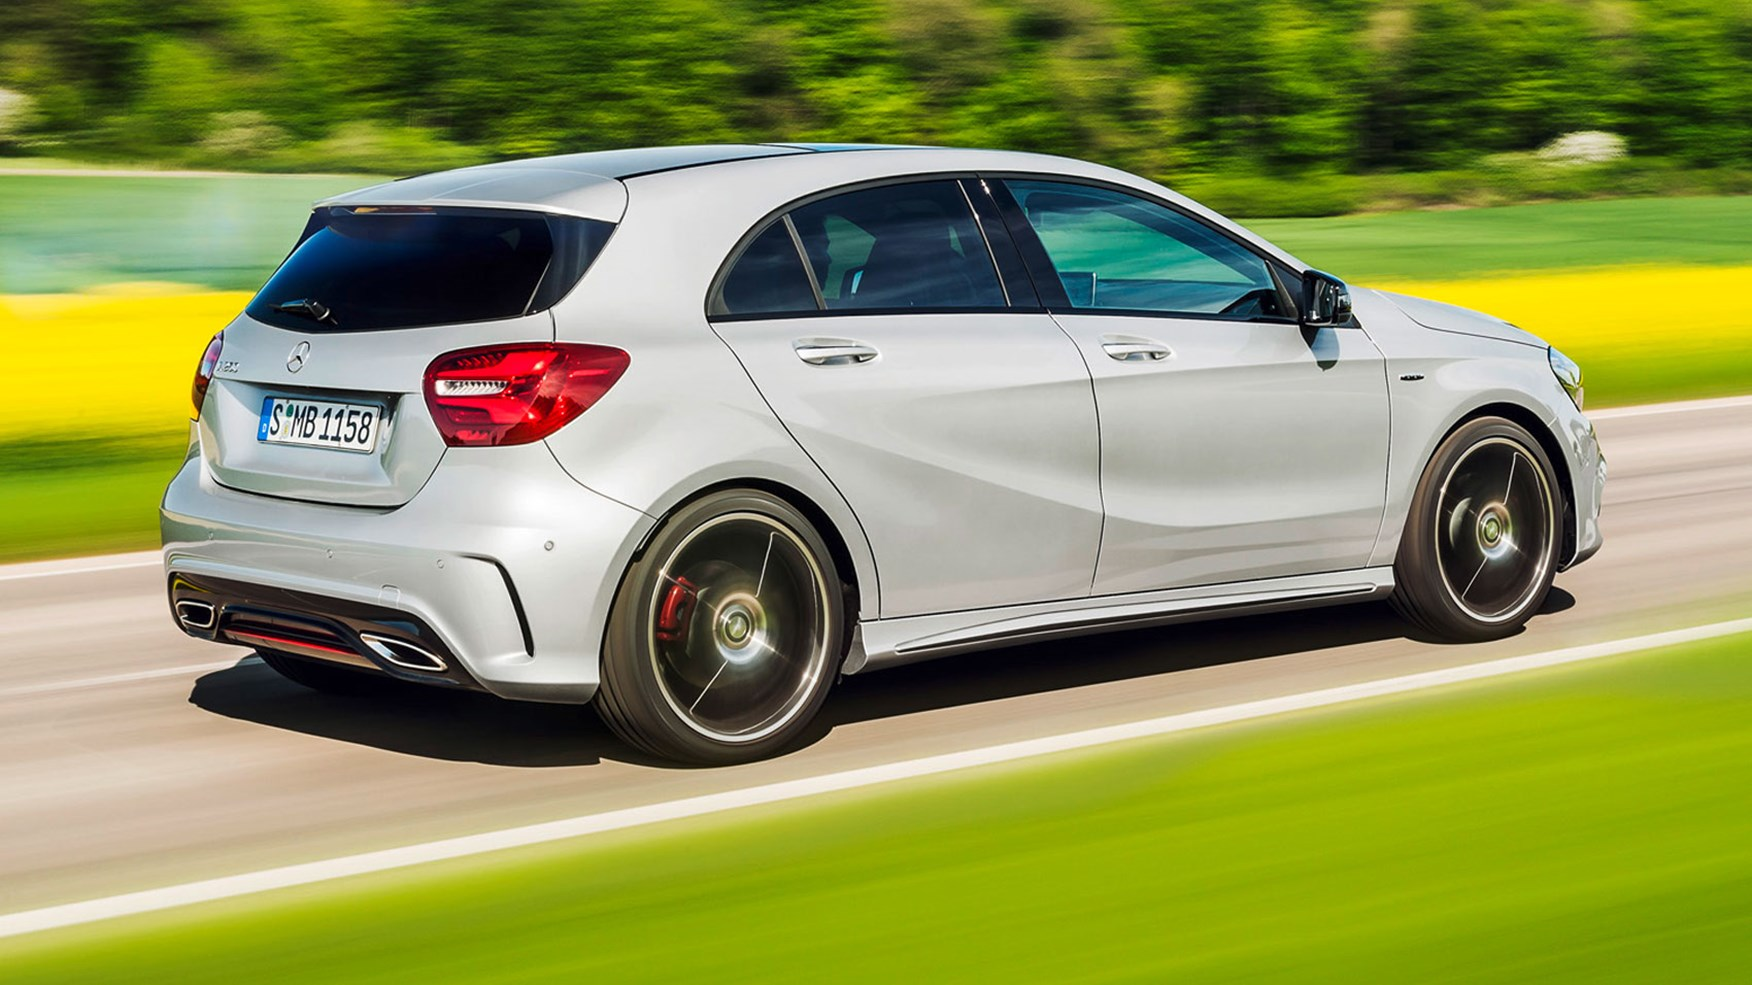 Mercedes Benz A250 Amg 2015 Review By Car Magazine